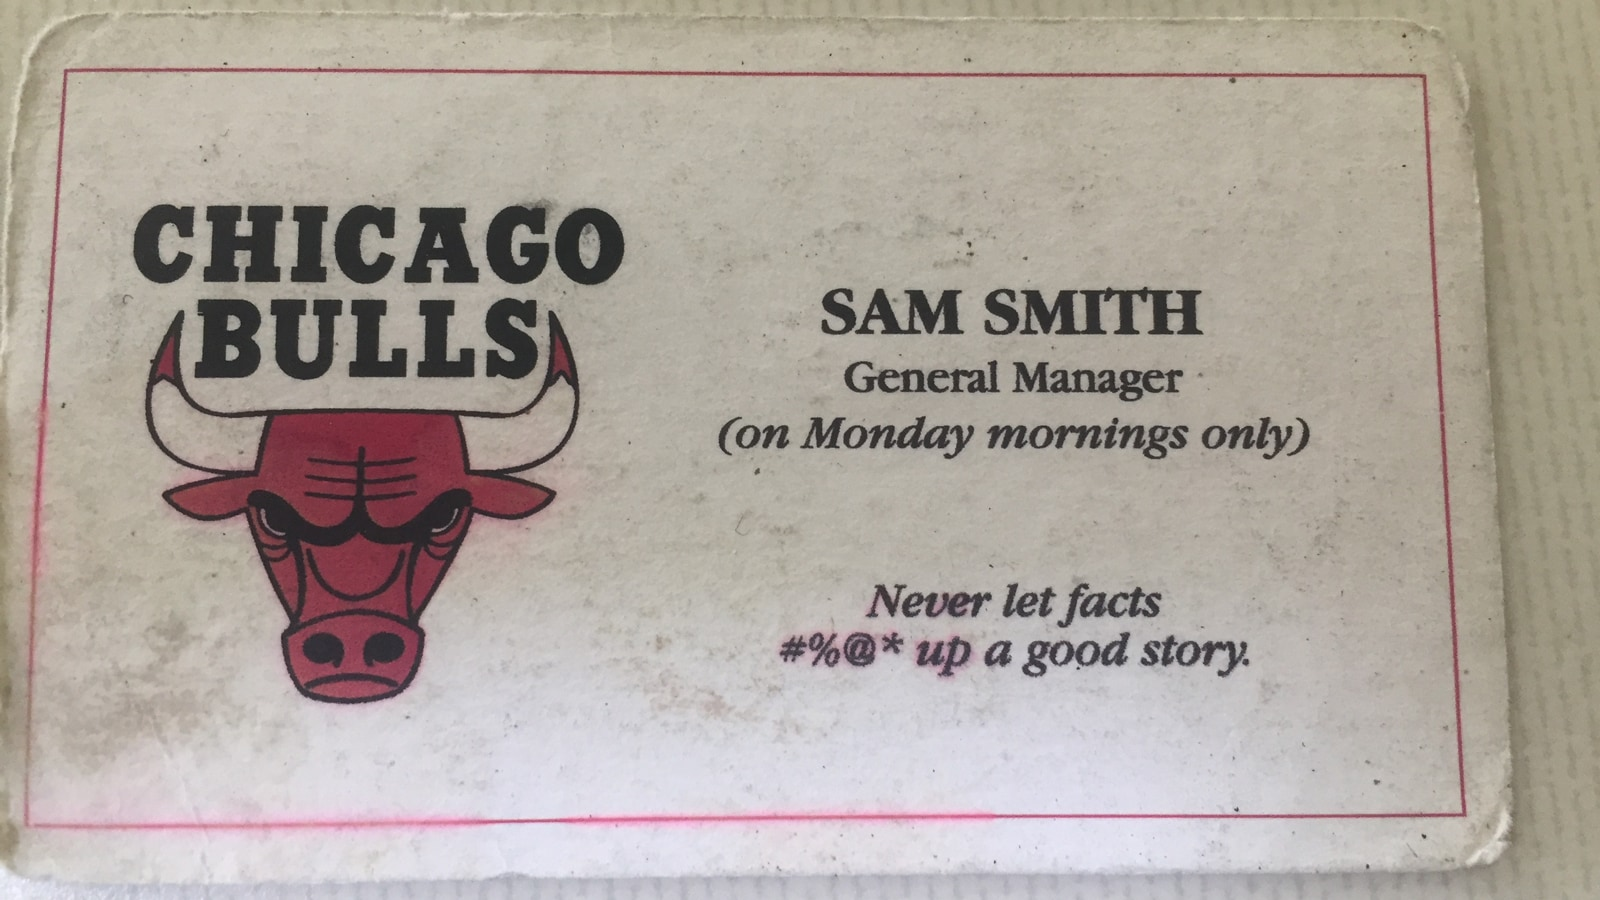 Business card given to Sam by the late Jerry Krause